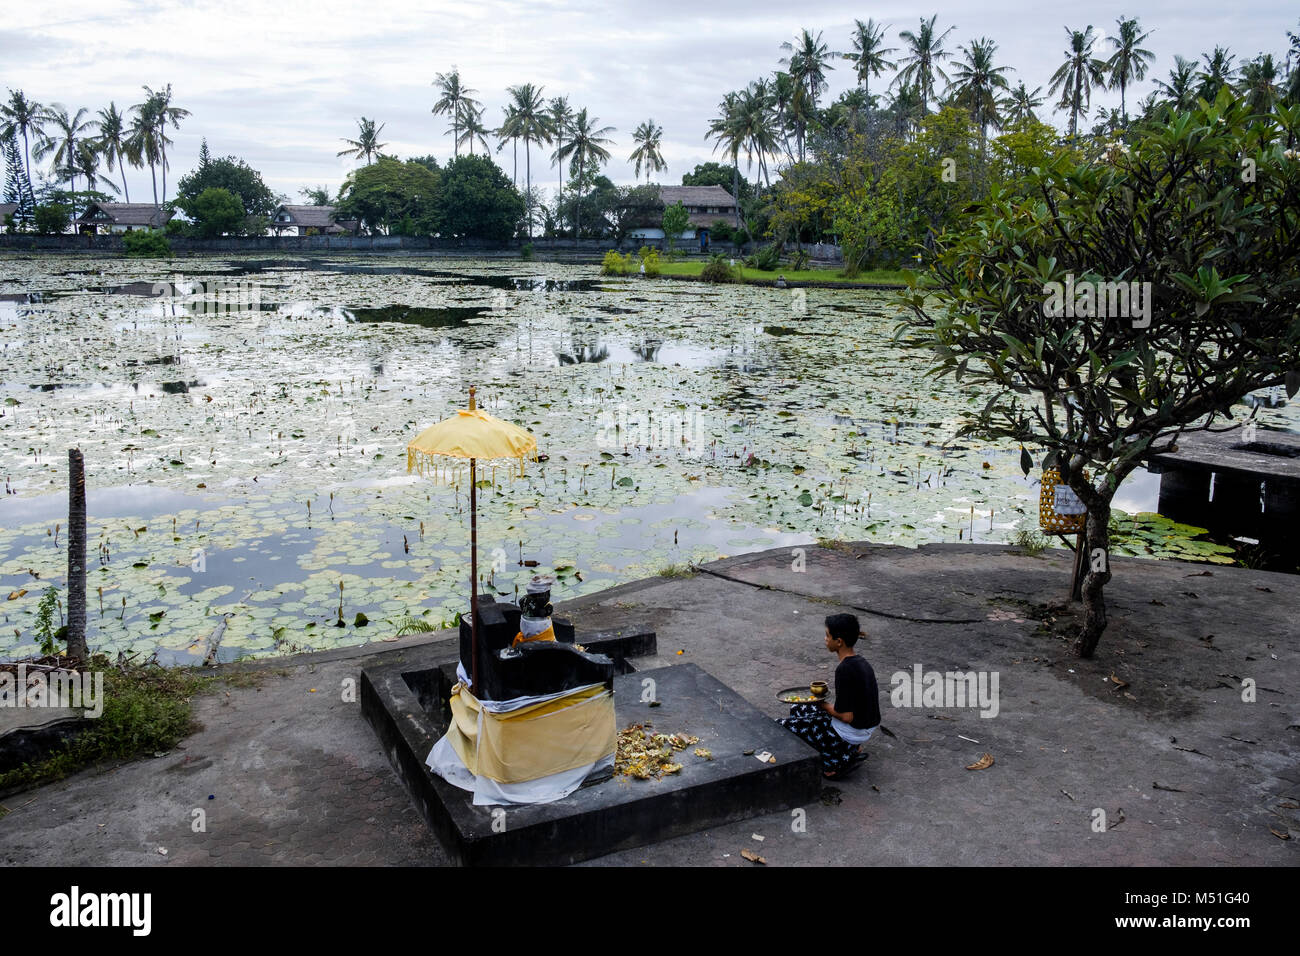 A young man makes religious offerings on the shores of the Candidasa Lotus Pond, Bali, Indonesia. - Stock Image